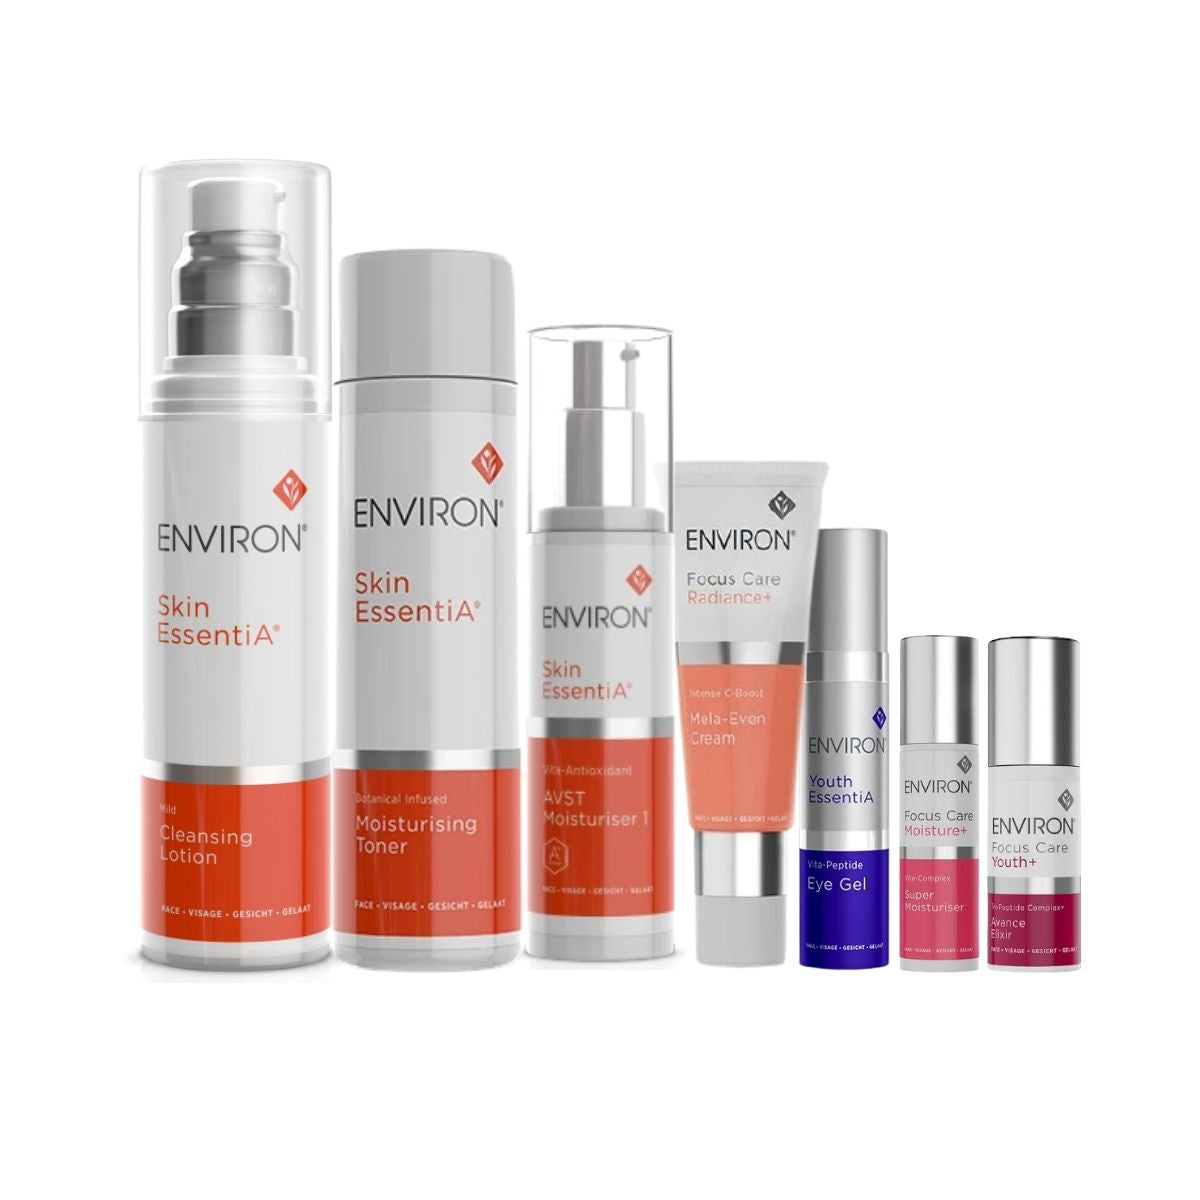 Environ Skin EssentiA Value Bundle with Cleansing Lotion